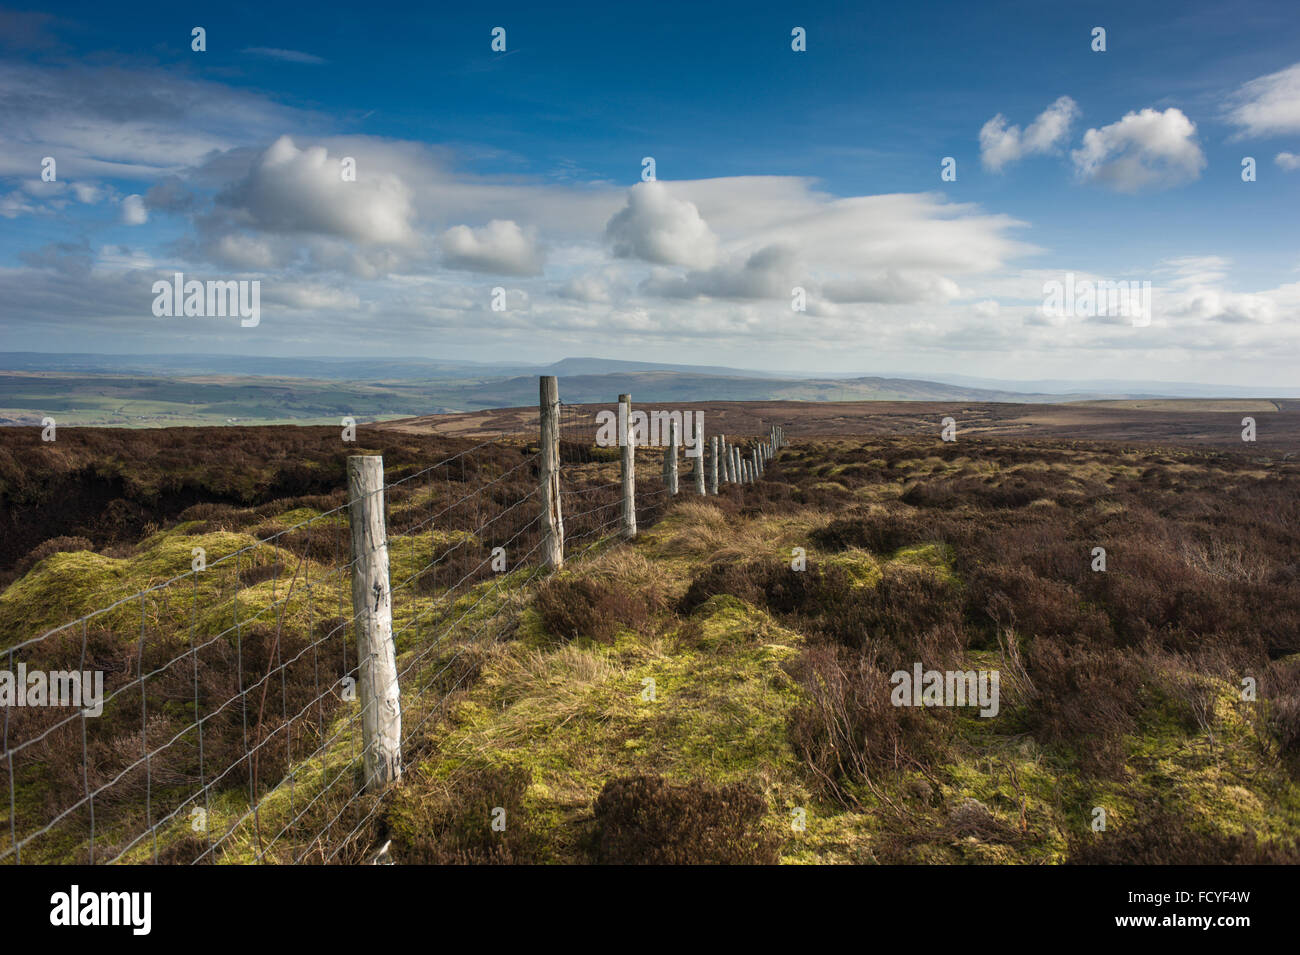 The watershed fence on Baxton Fell in the heart of Bowland - Stock Image